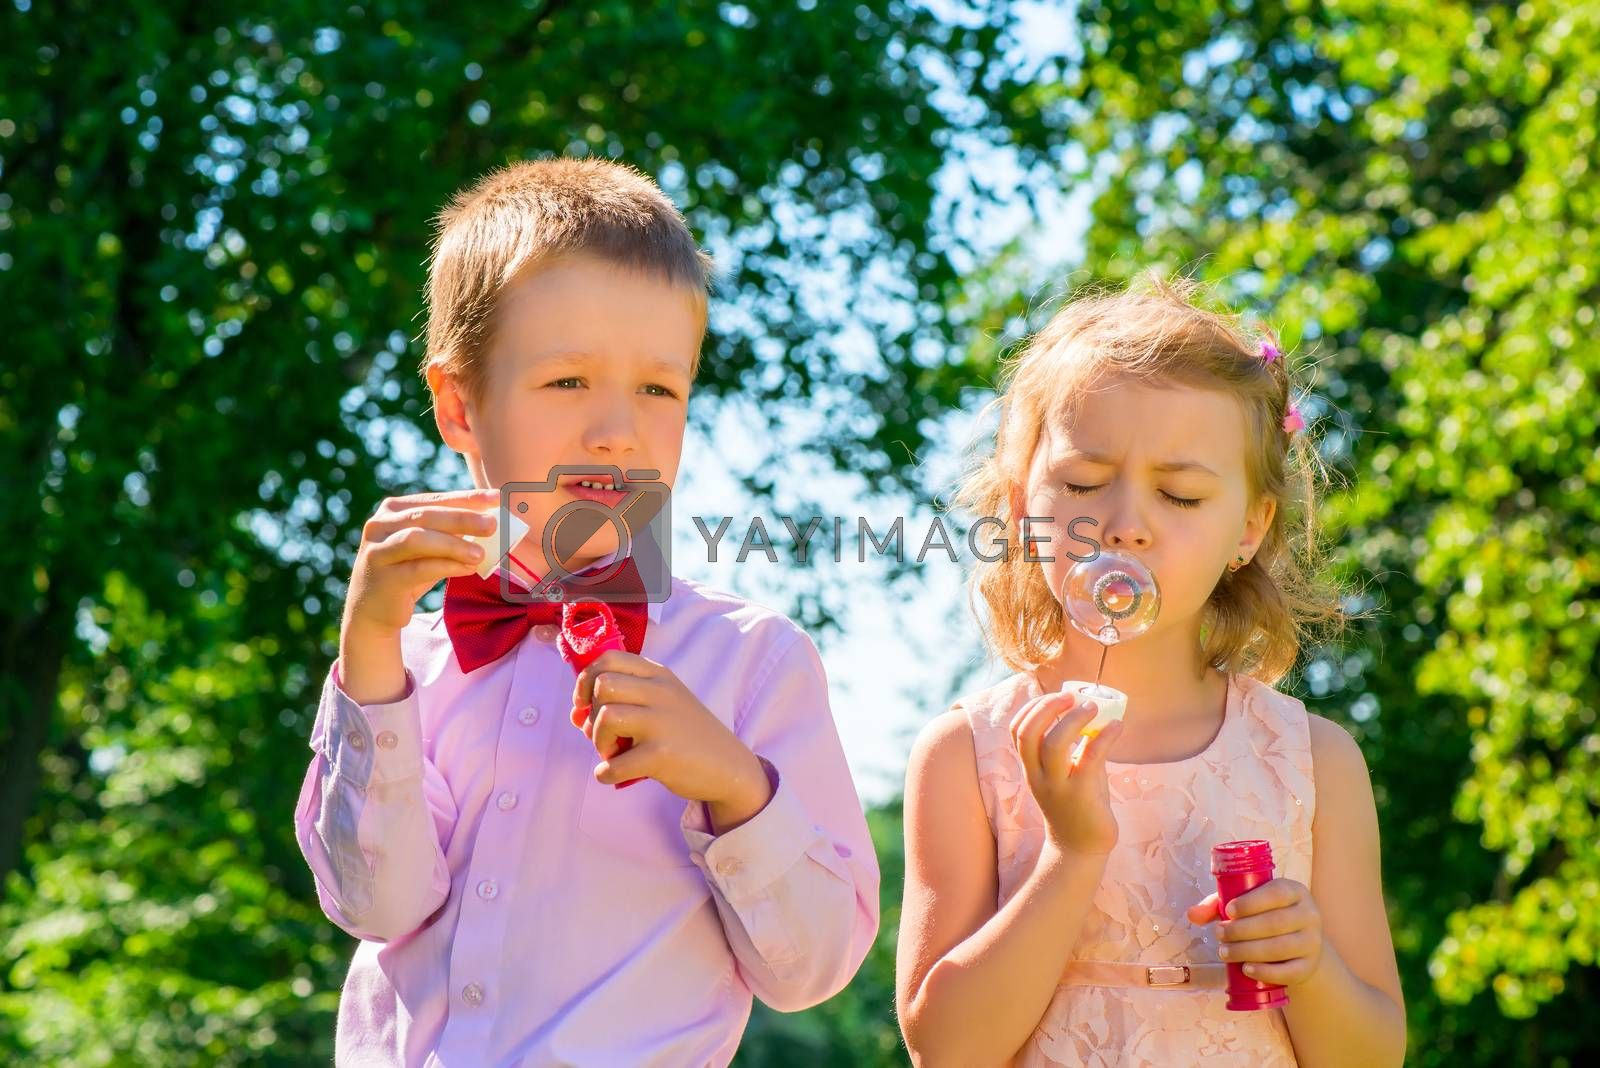 beautifully dressed kids with soap bubbles in the park